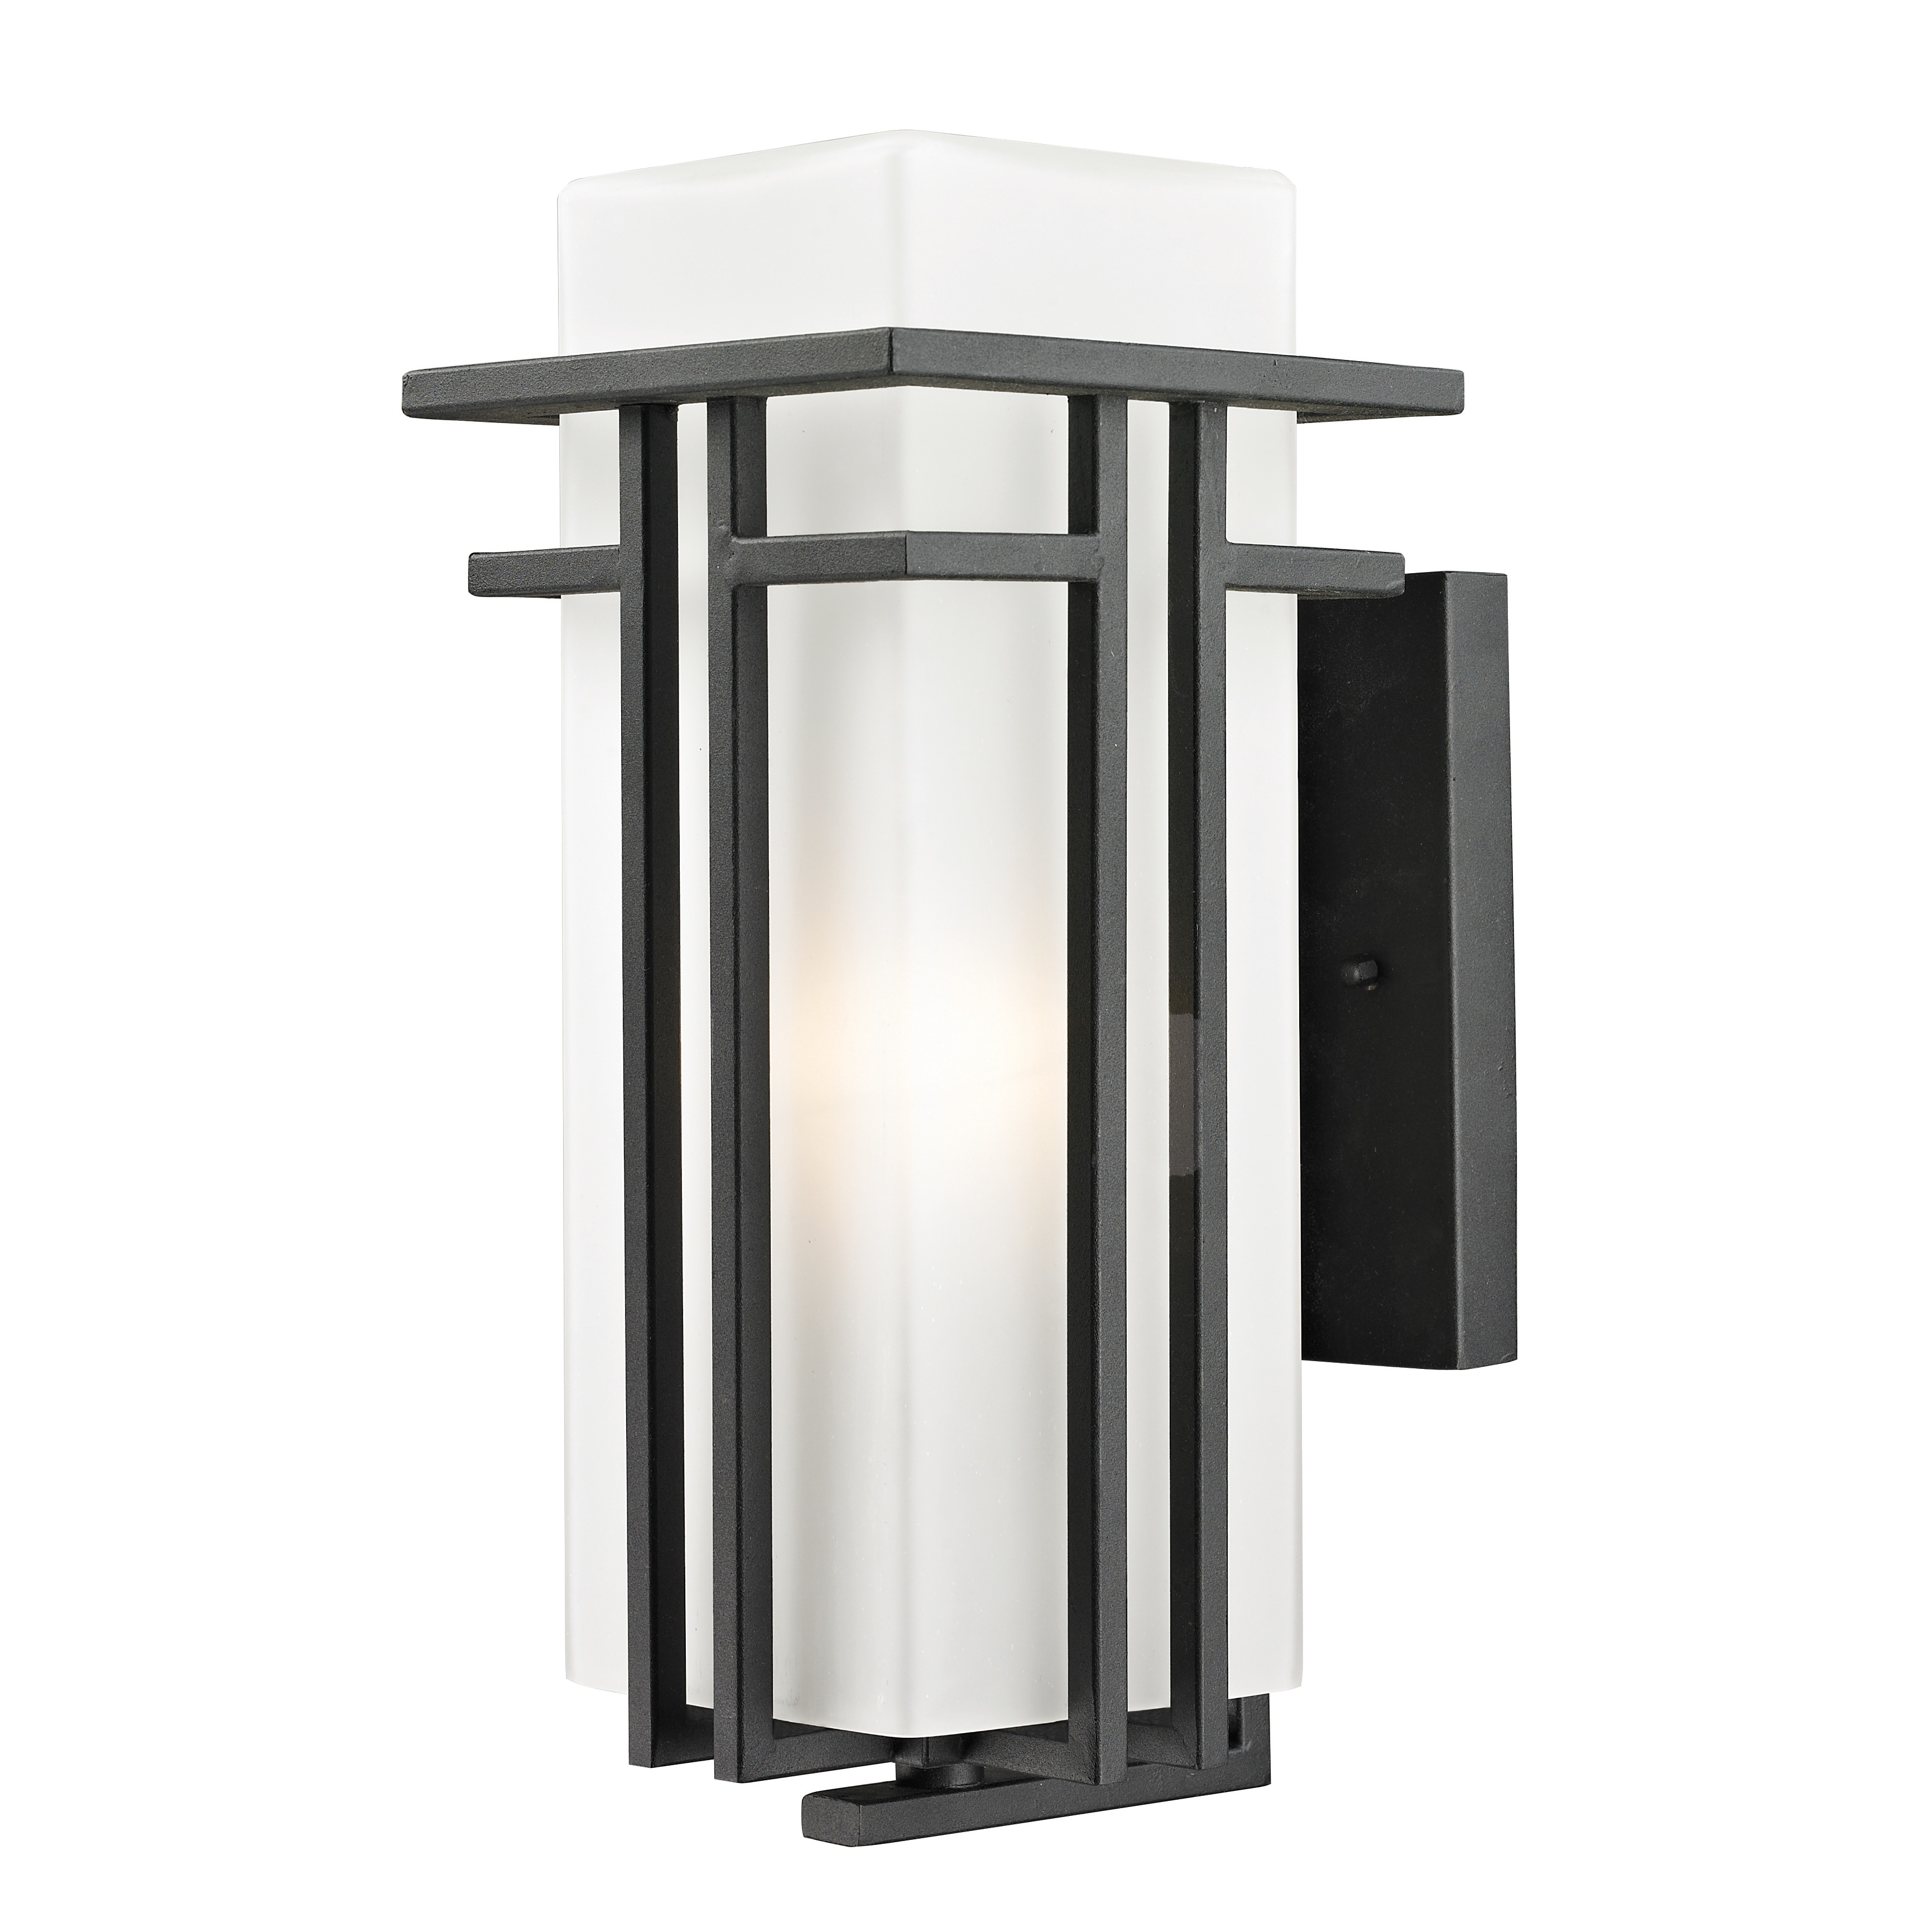 Avery home lighting contemporary outdoor wall light